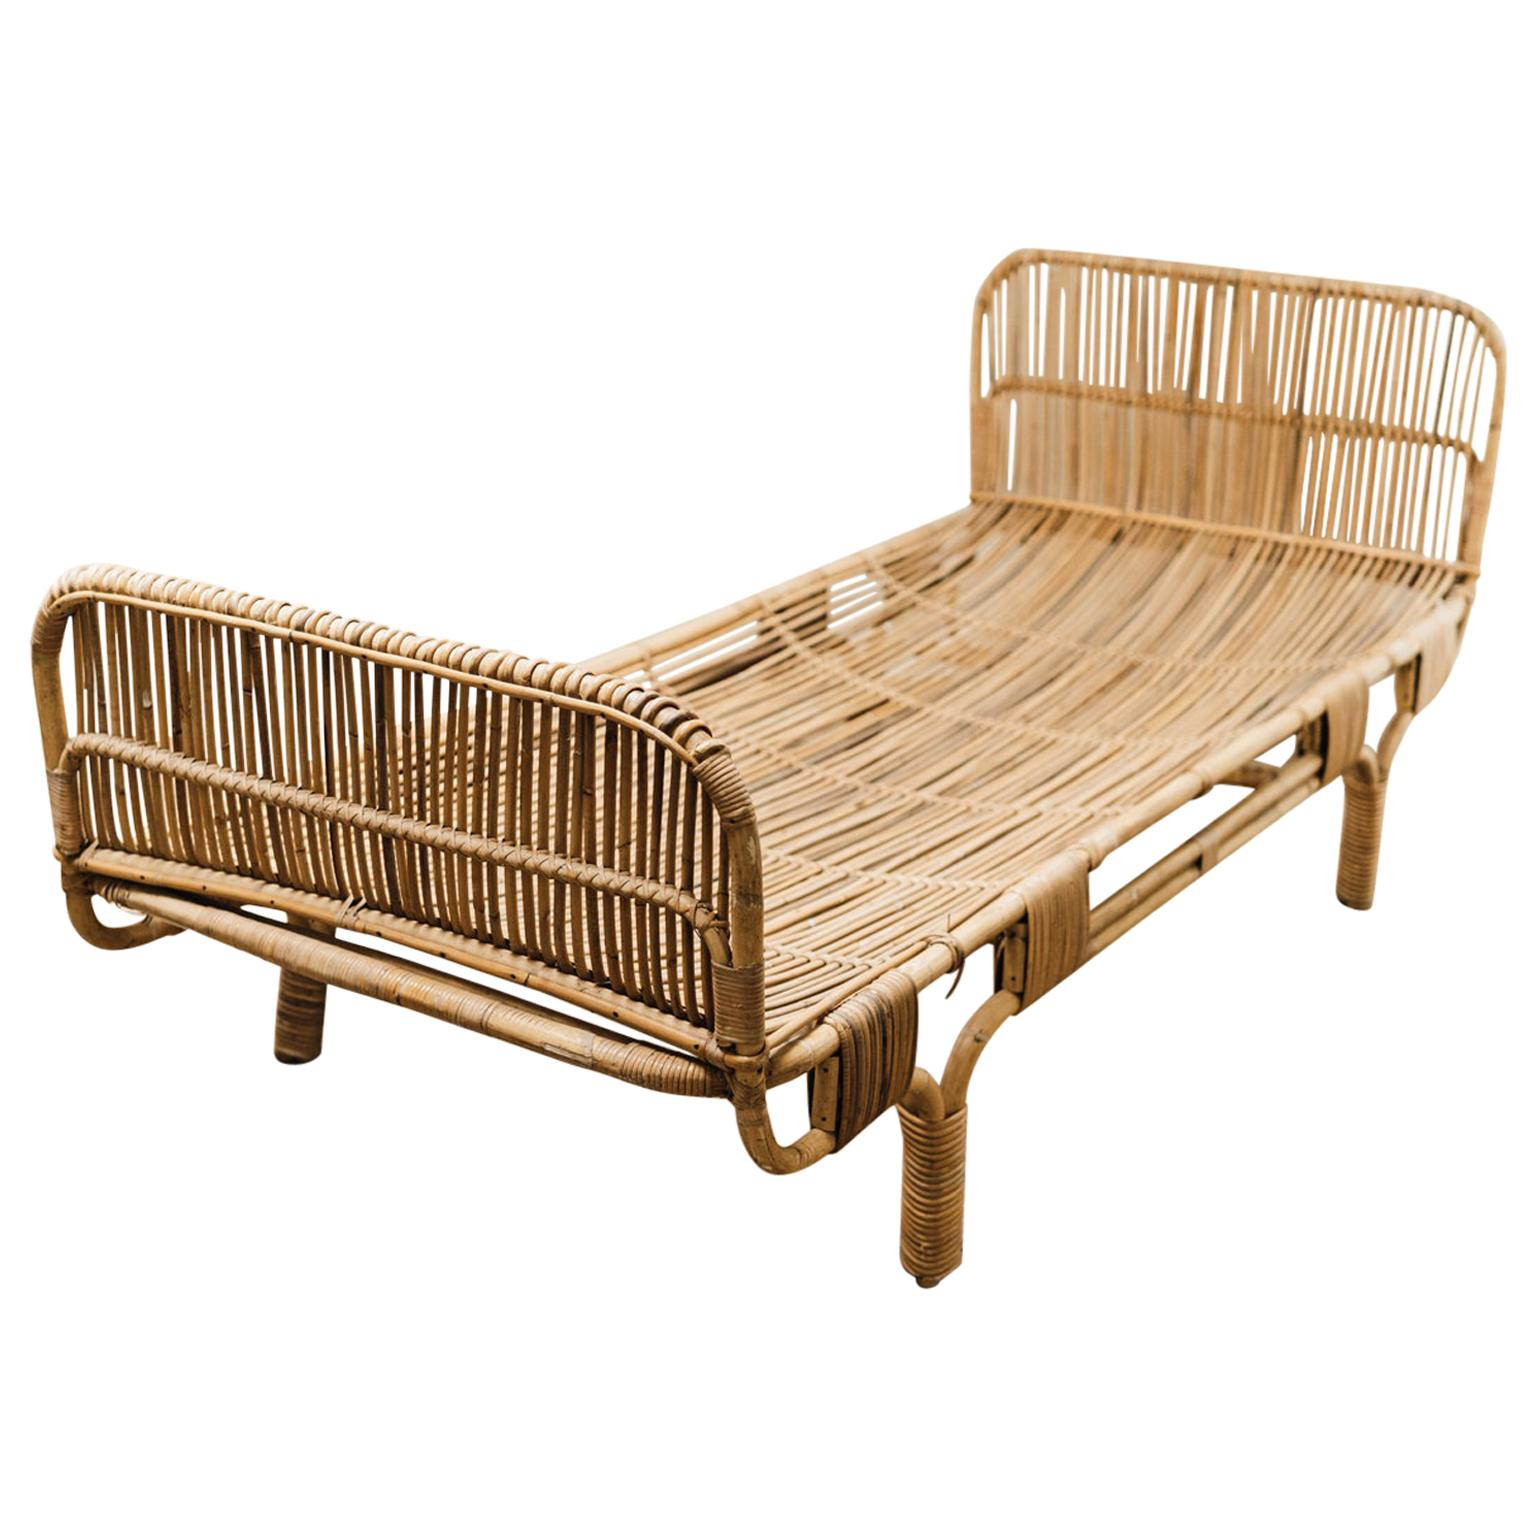 1970s Rattan Daybed